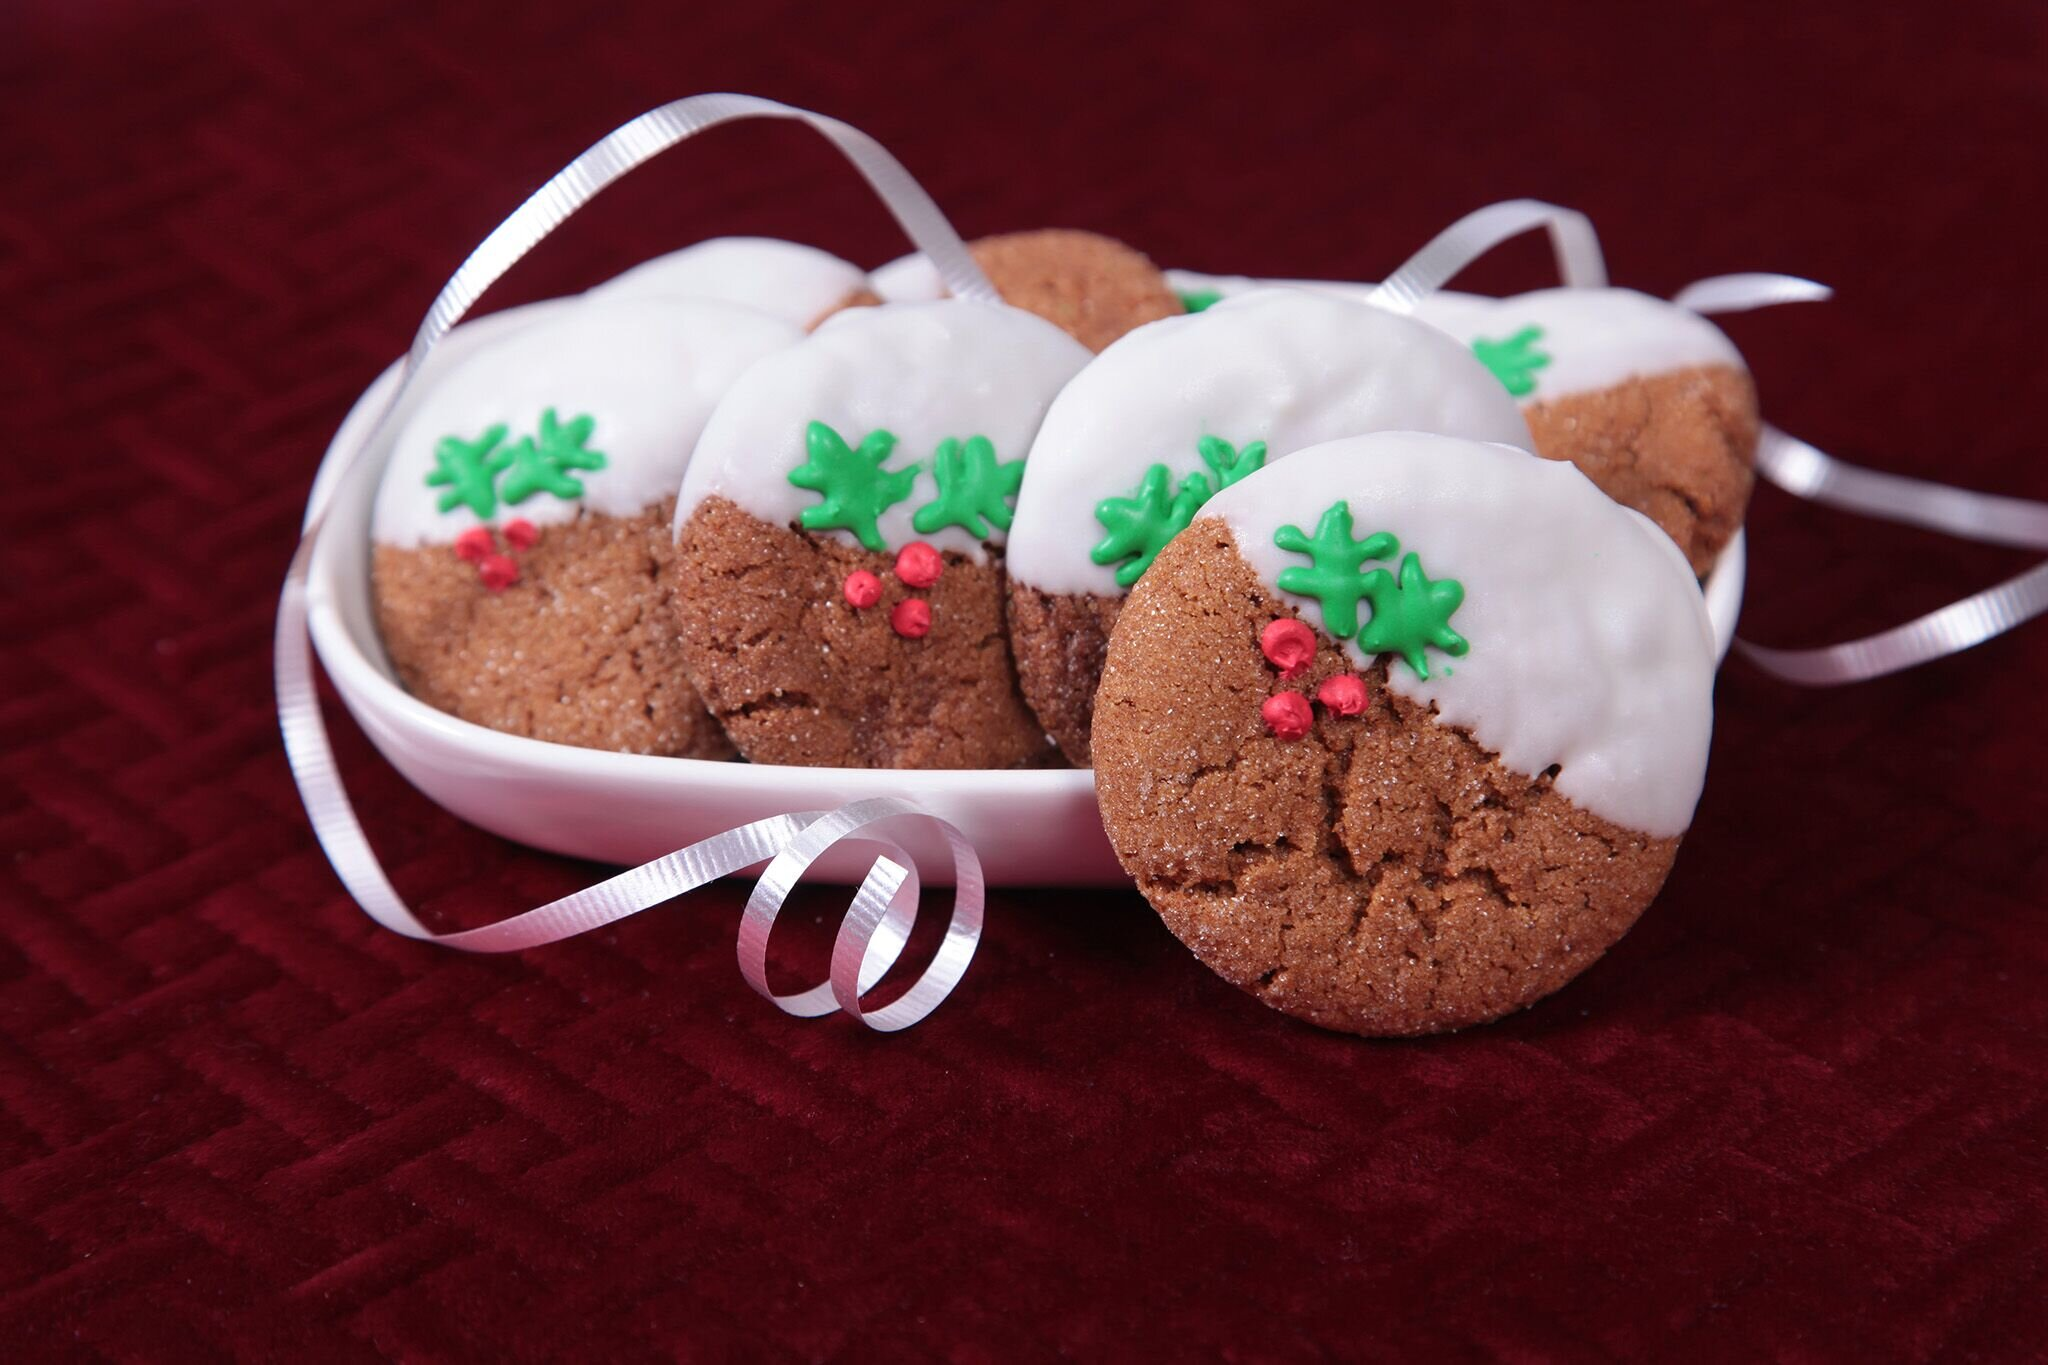 Join us for the 2019 West Michigan Bed & Breakfast Christmas Cookie Tour. Click here for more details.